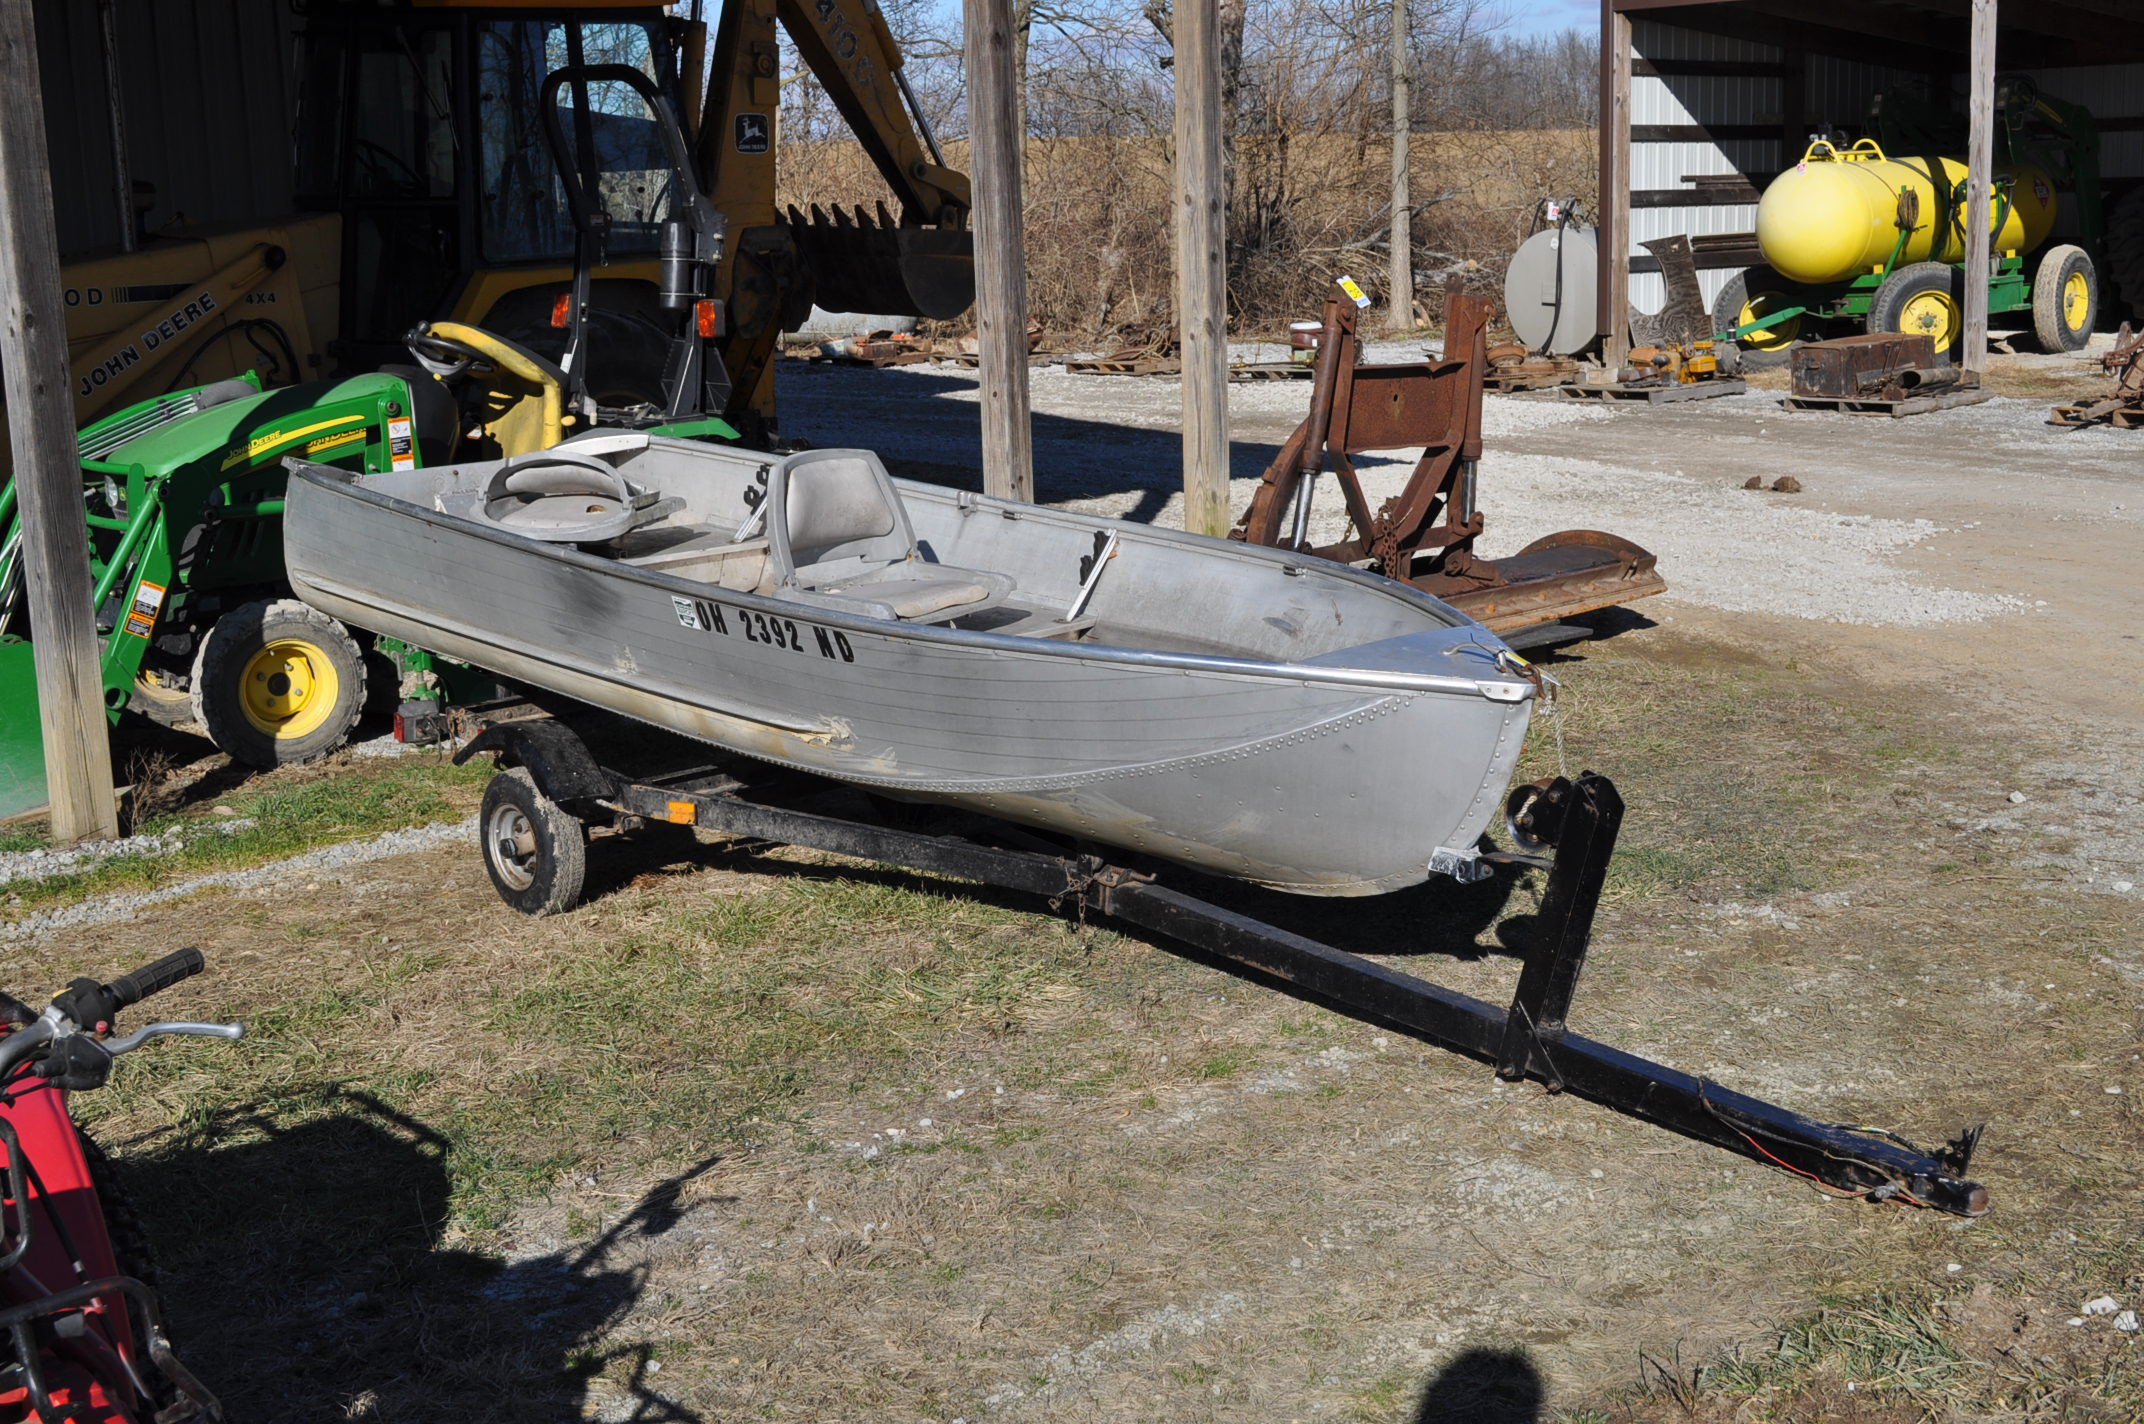 13 ½' aluminum boat w/ trailer, no motor, NO TITLE - Image 2 of 6